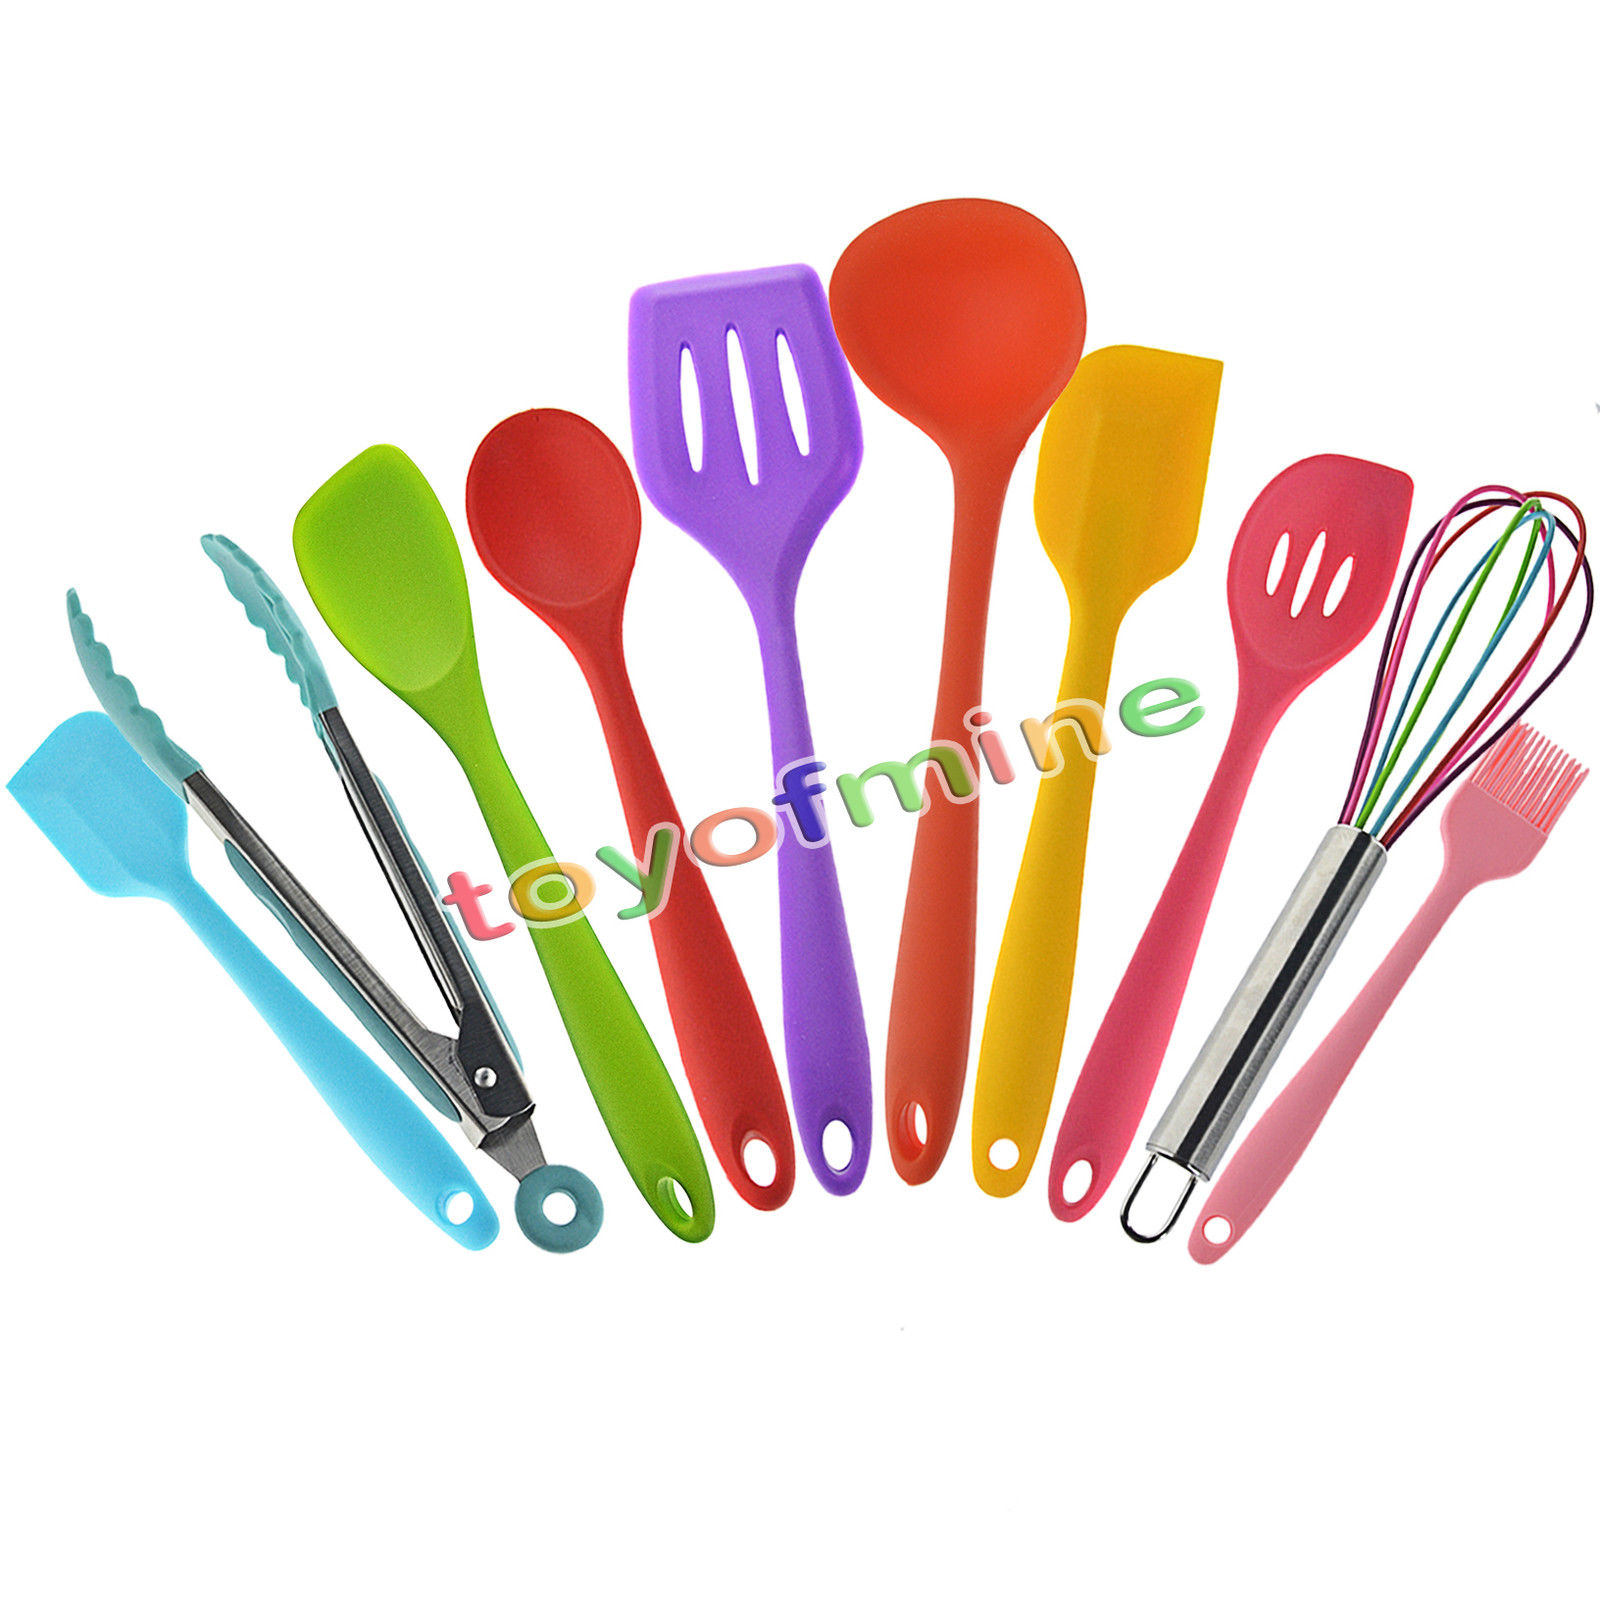 10pcs Utensils Heat Resistant Cooking Utensil Set Non Stick Silicone Kitchen Utensil Set High